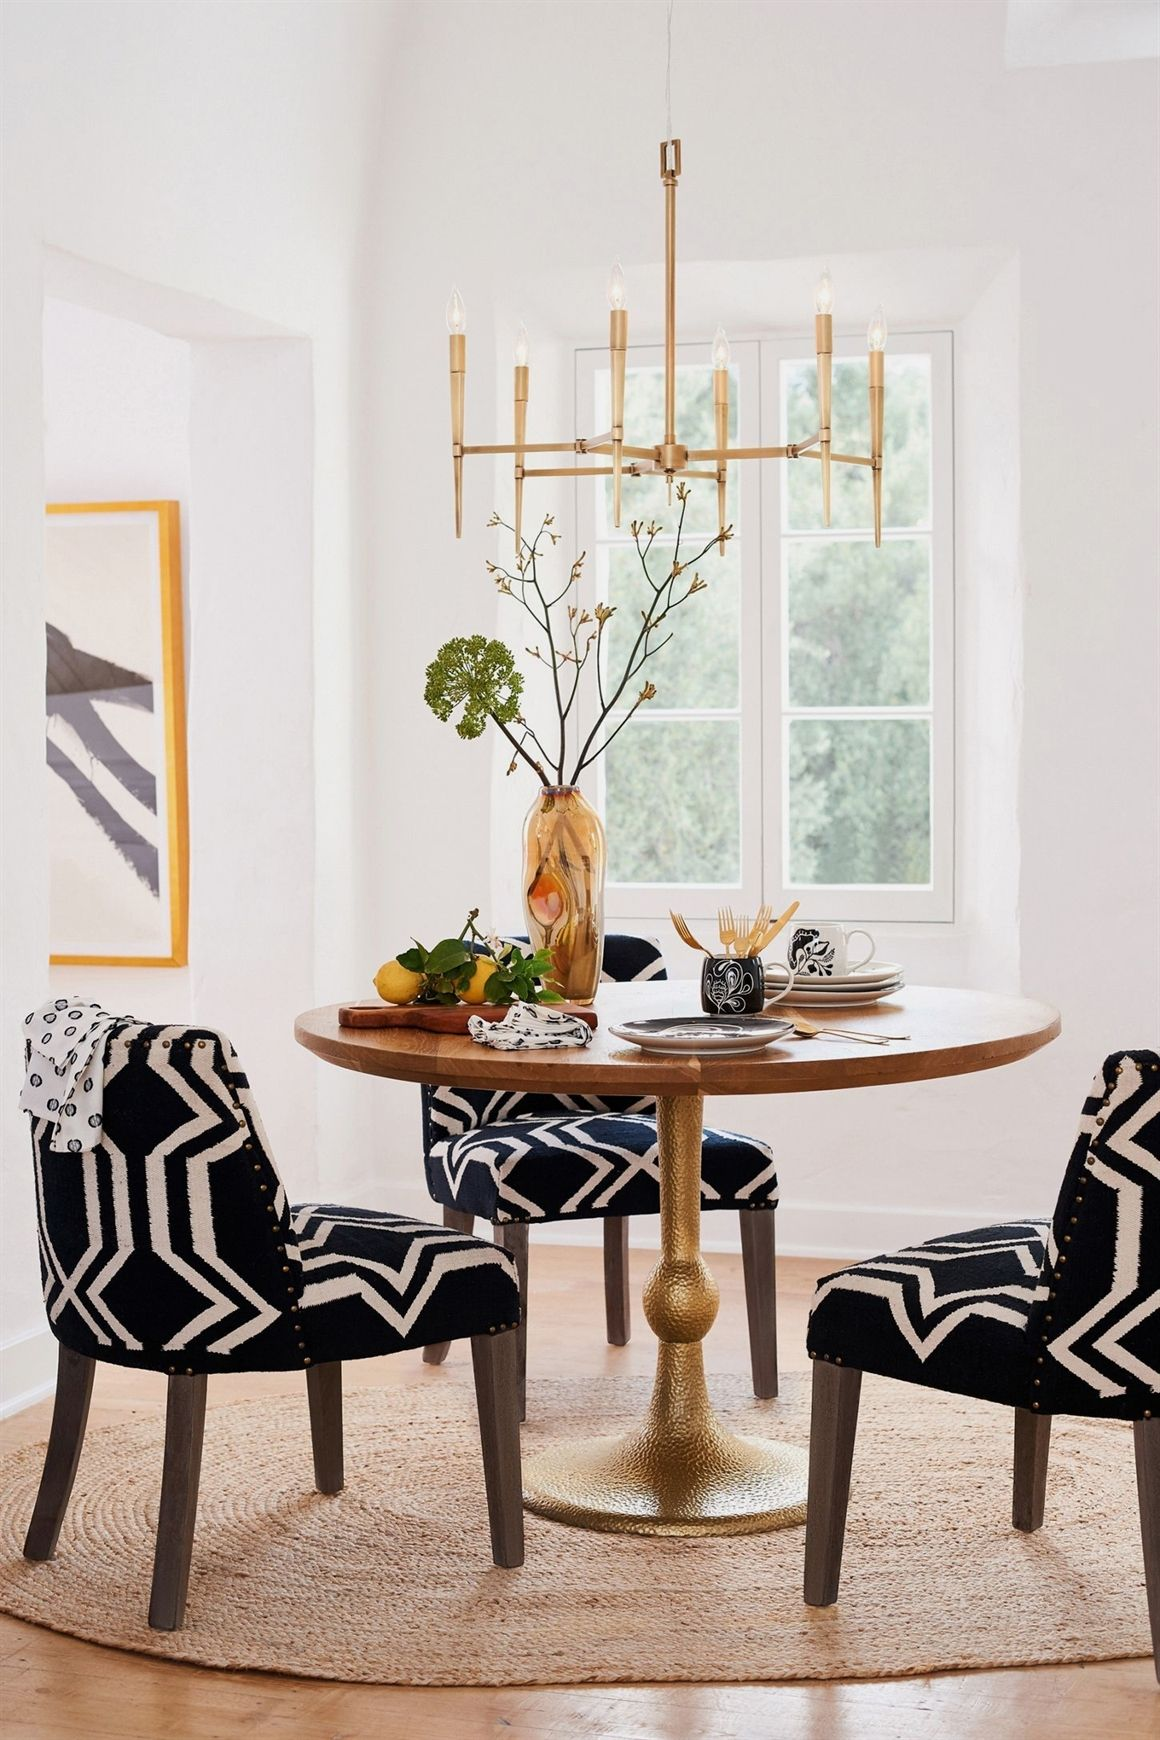 Dining Room Table Risers Design Ideas